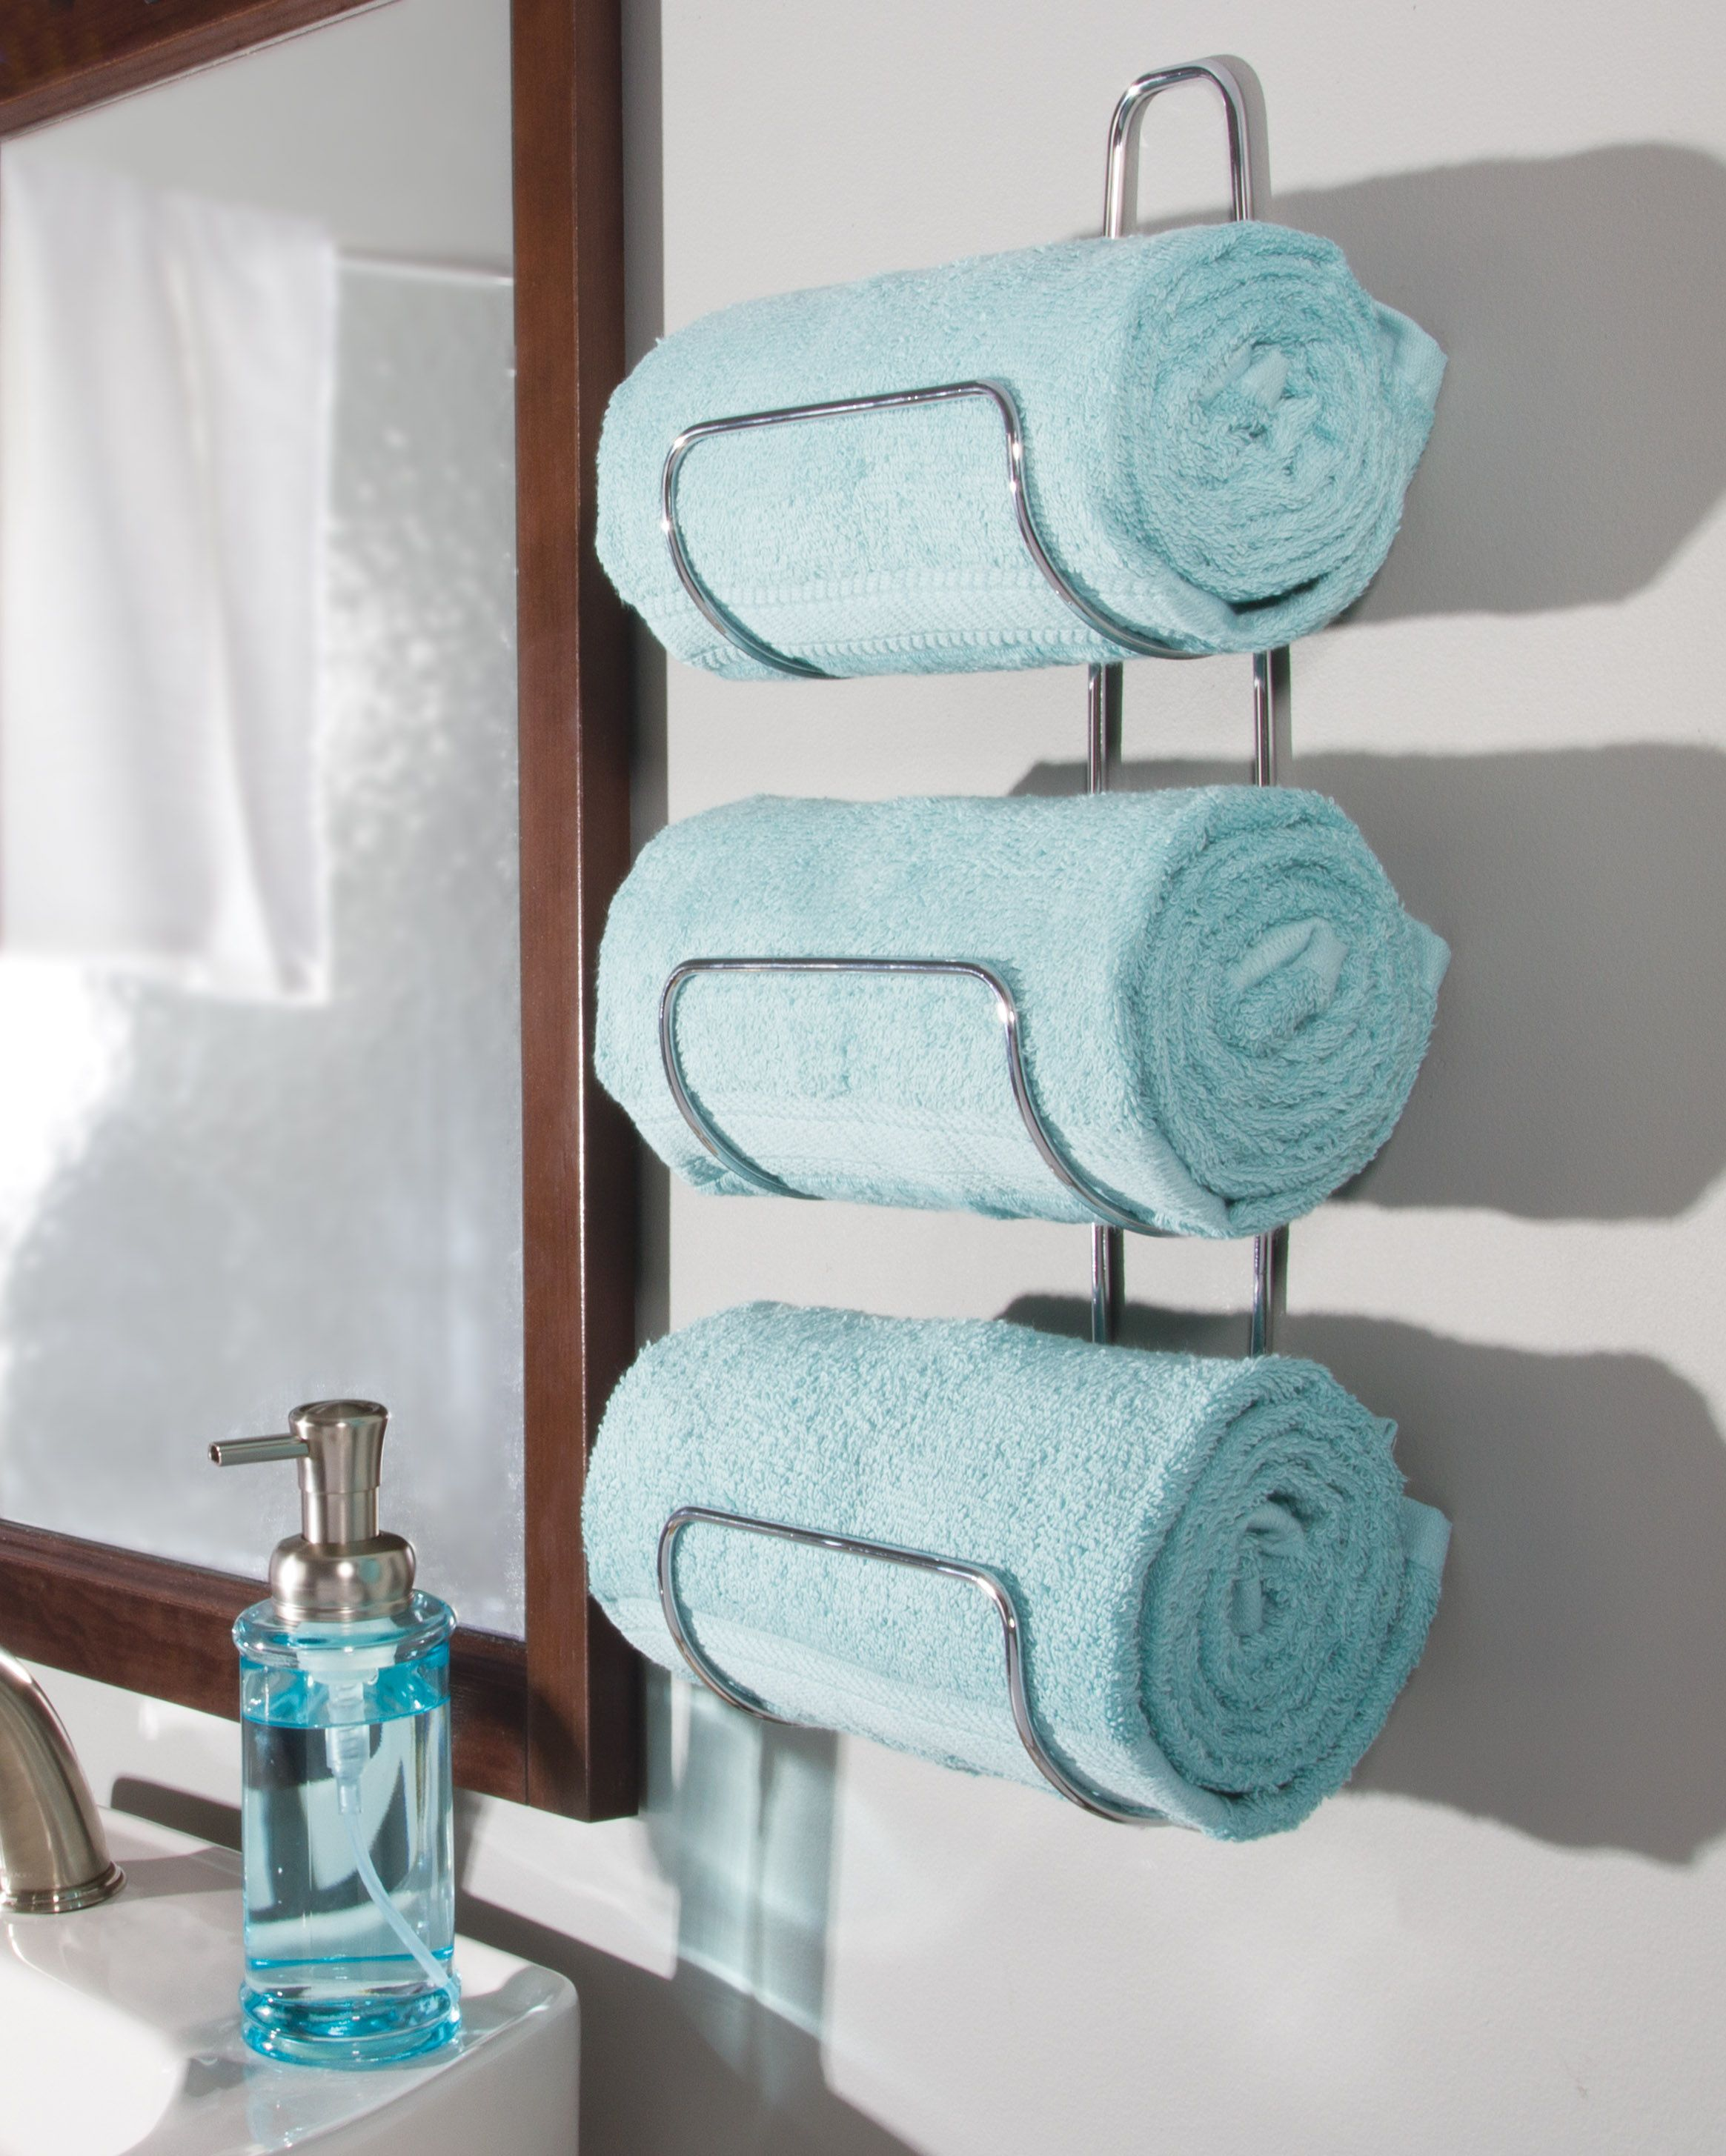 Towel Storage Ideas 19 Neat Ways To Tidy Your Smallest Room Real Homes Towel Holder Bathroom Towel Storage Bathroom Towel Storage